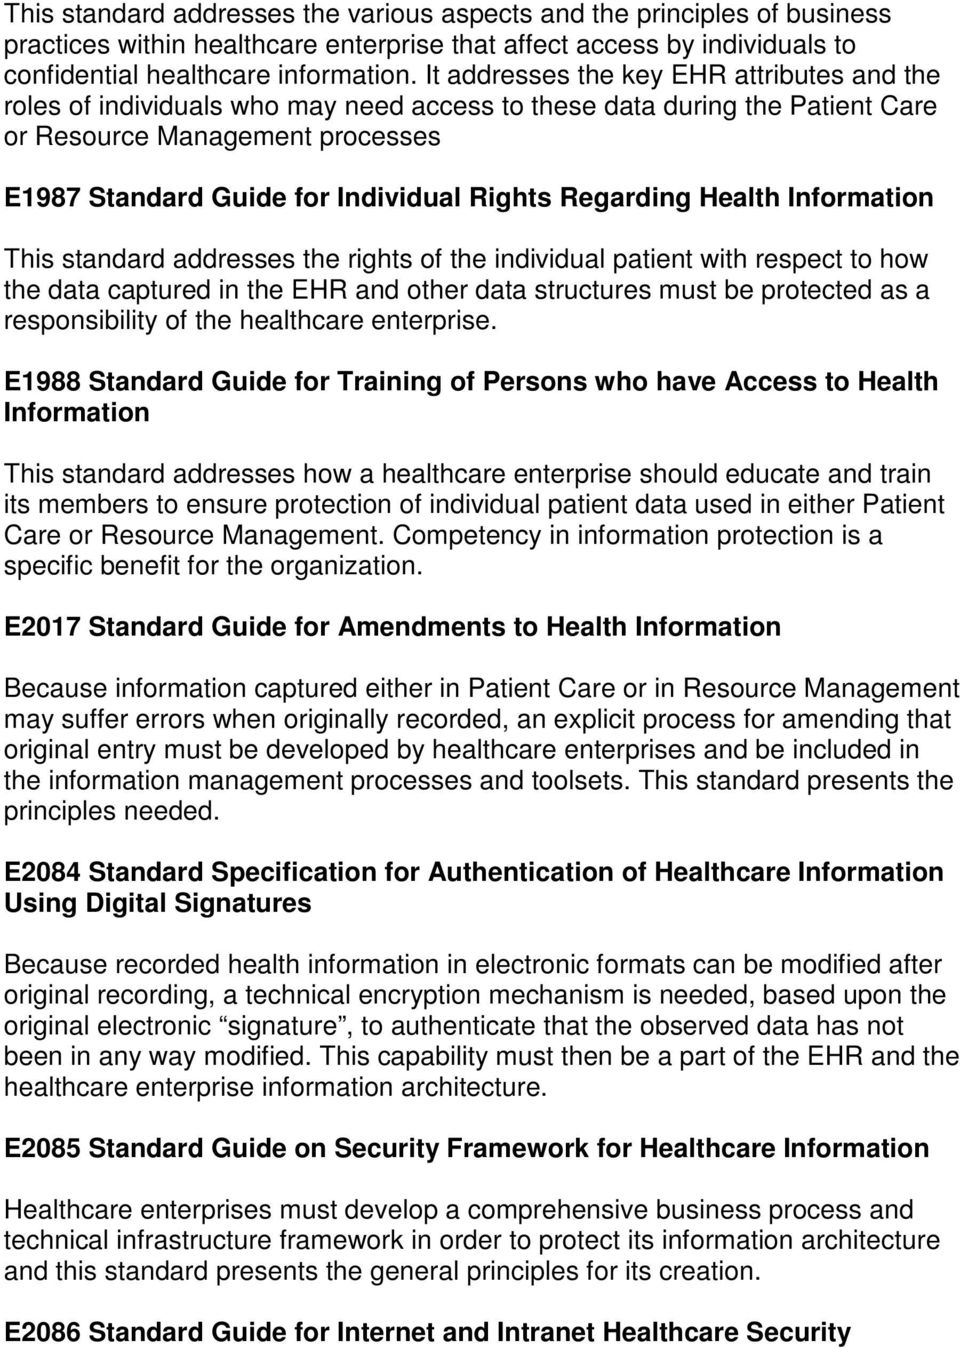 Regarding Health Information This standard addresses the rights of the individual patient with respect to how the data captured in the EHR and other data structures must be protected as a